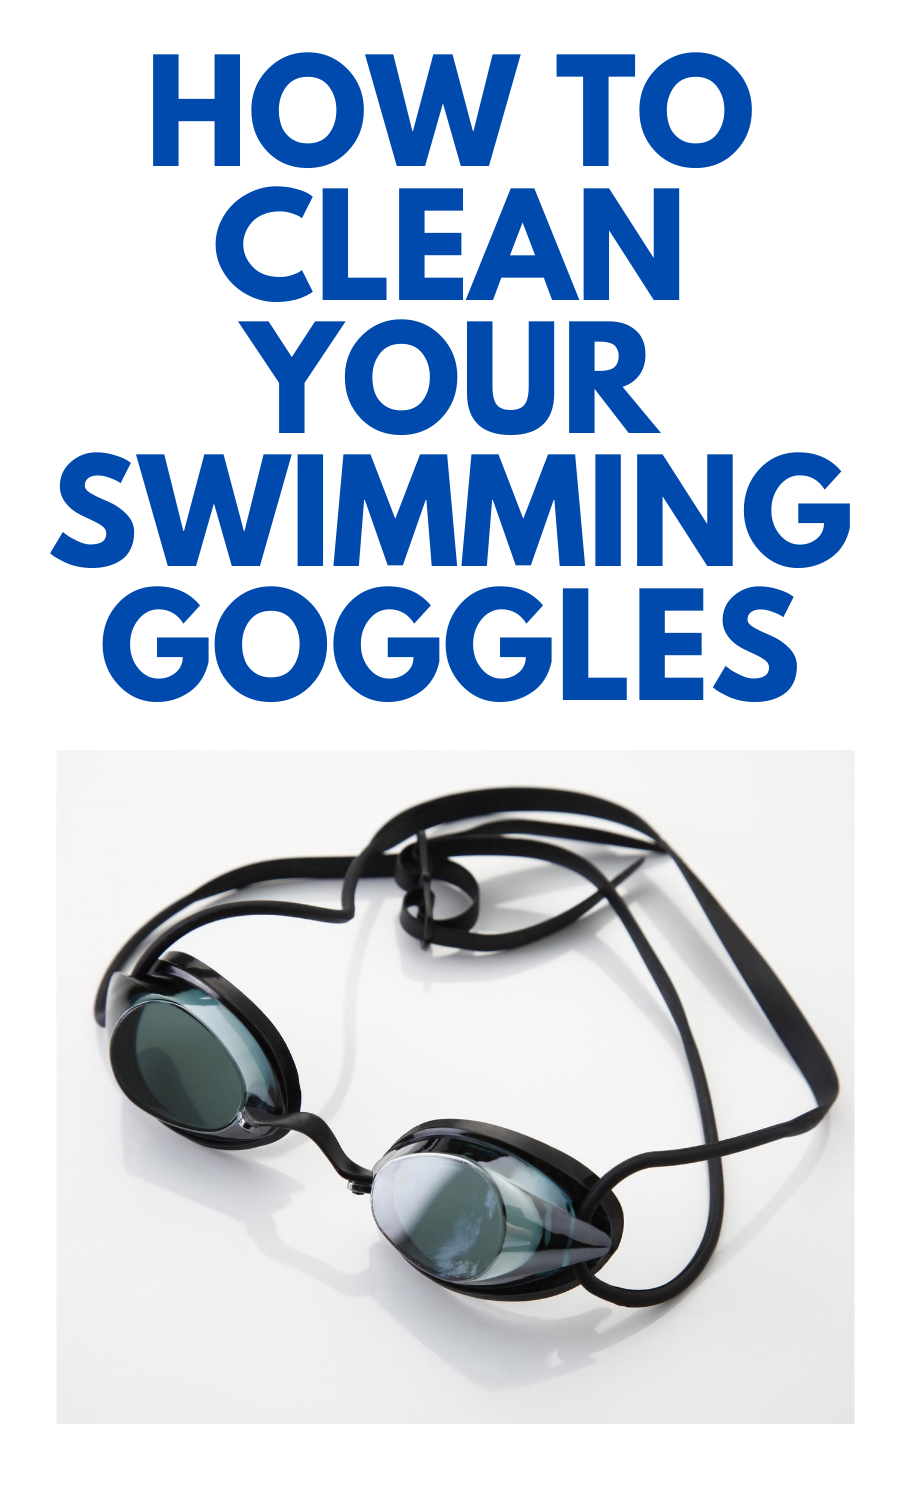 How To Clean Your Swimming Goggles In 2020 Swimming Goggles Mom Generations Goggles